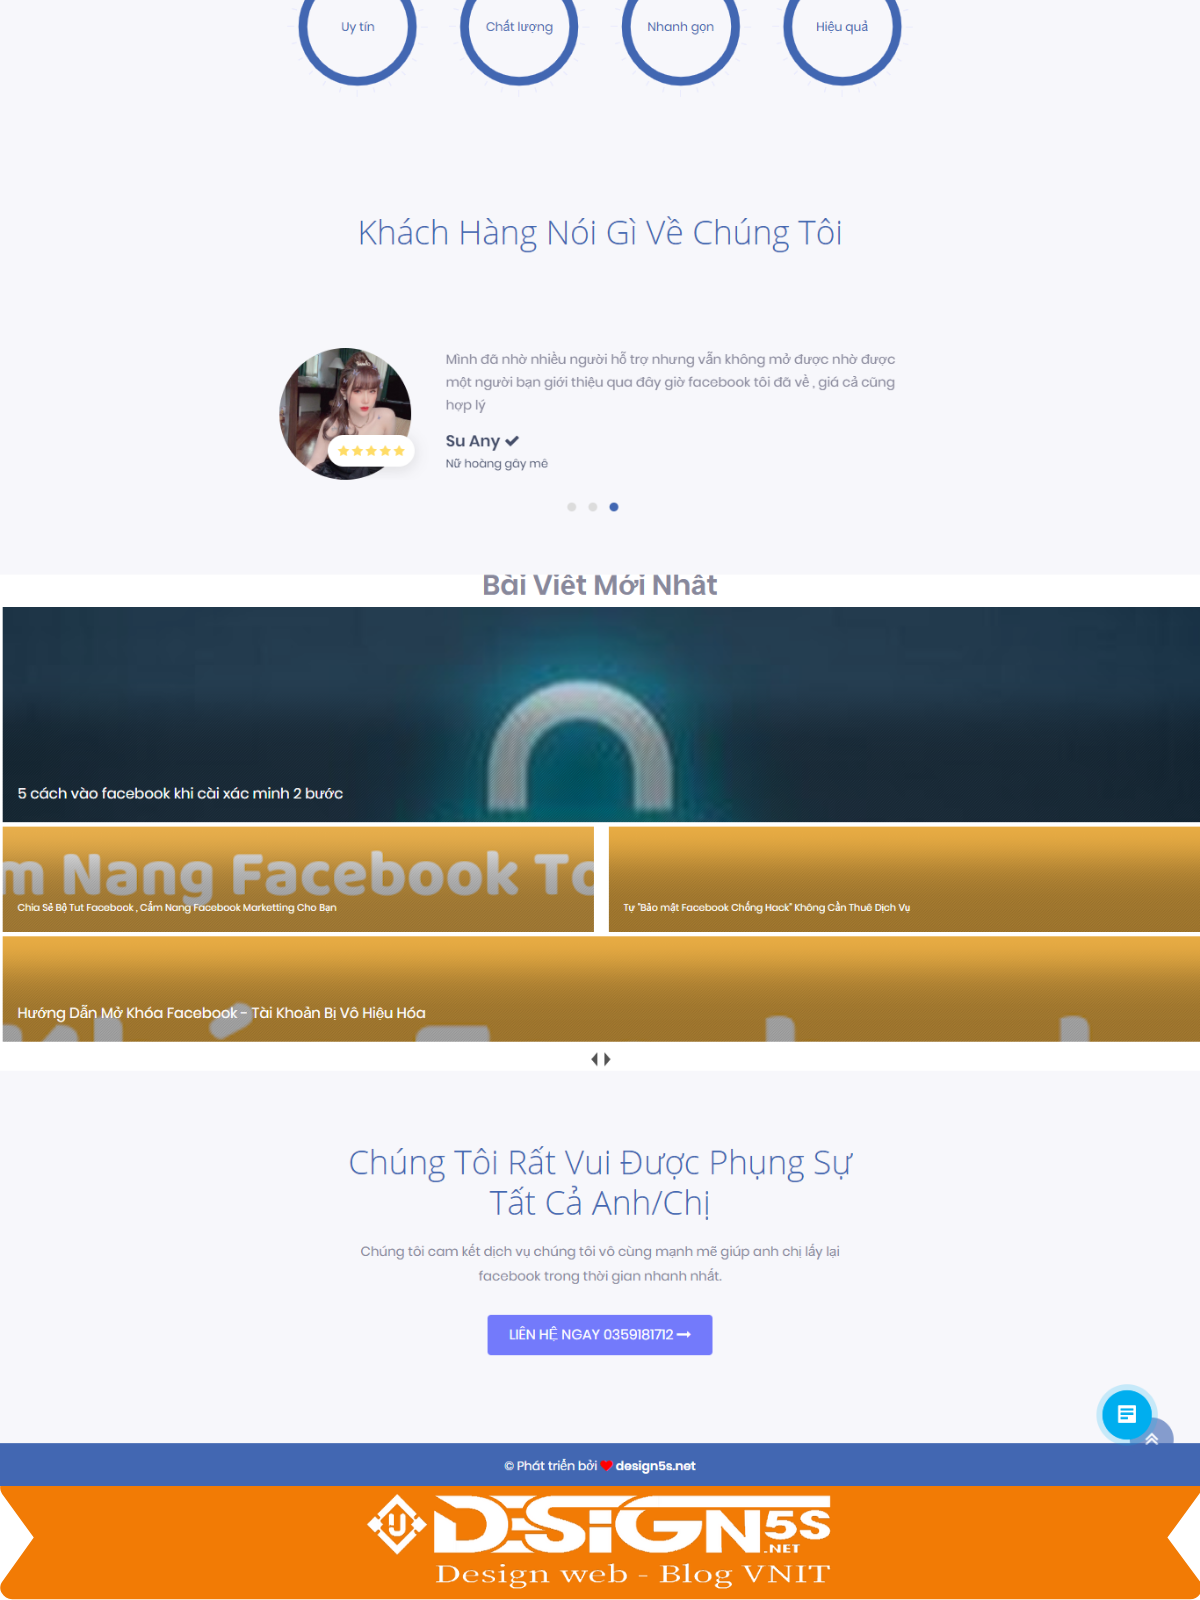 Free Template Blogger Landing Page Dịch Vụ Facebook - Ảnh 2